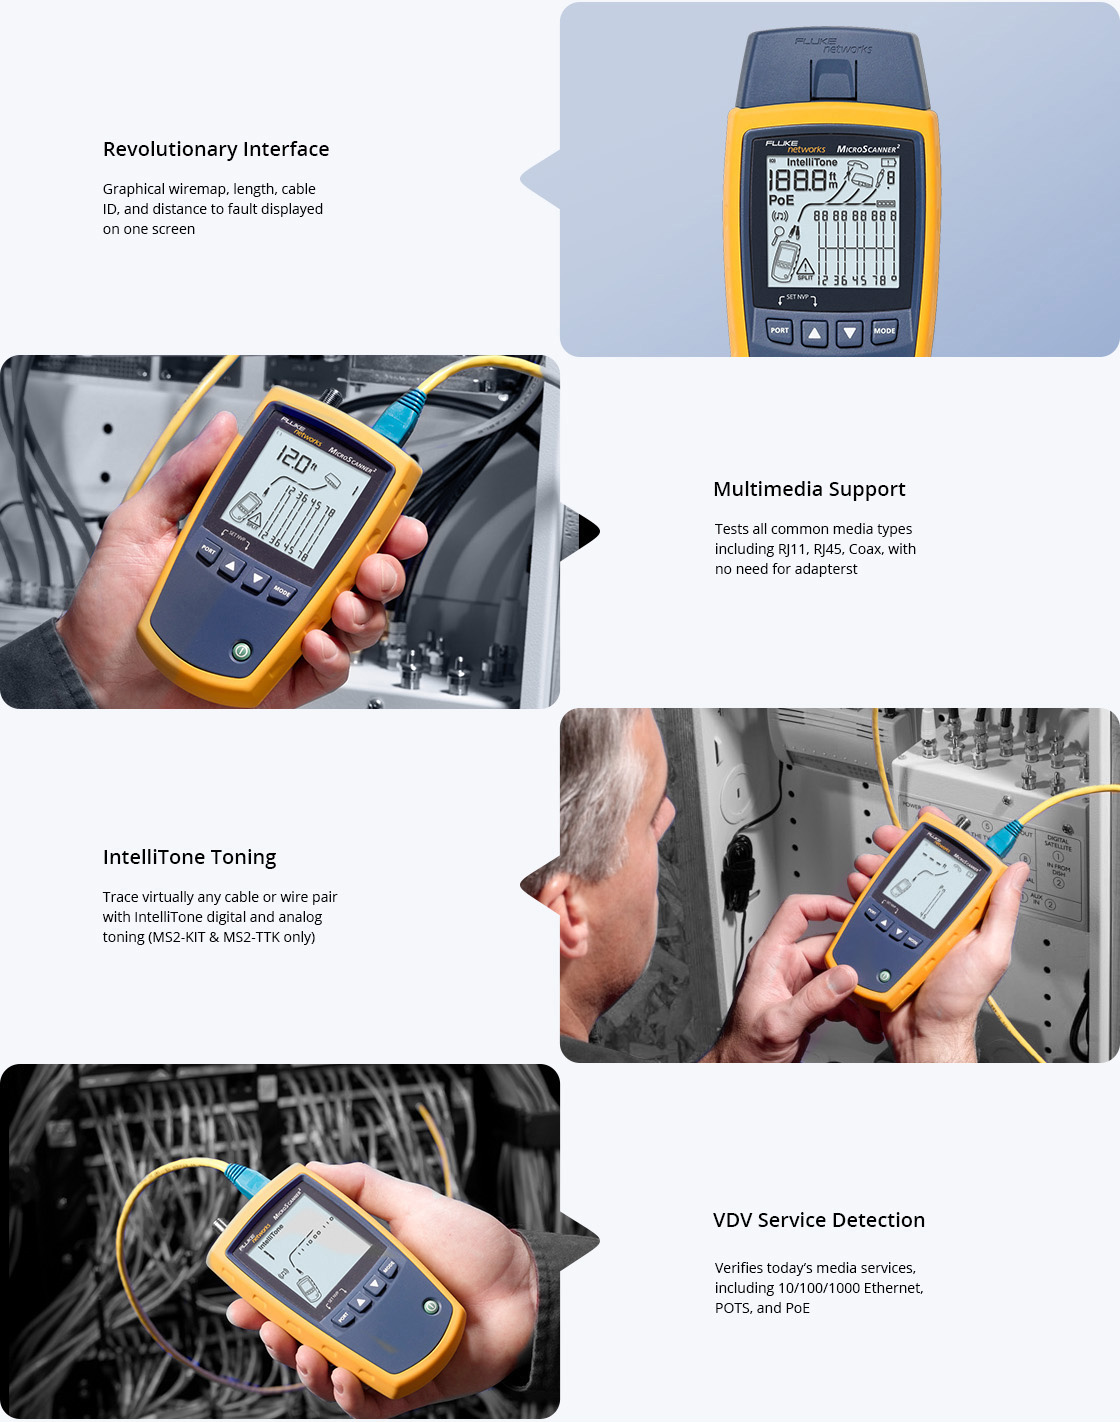 Network Cable Testers High Power Vision into Voice/Data/Video Cabling